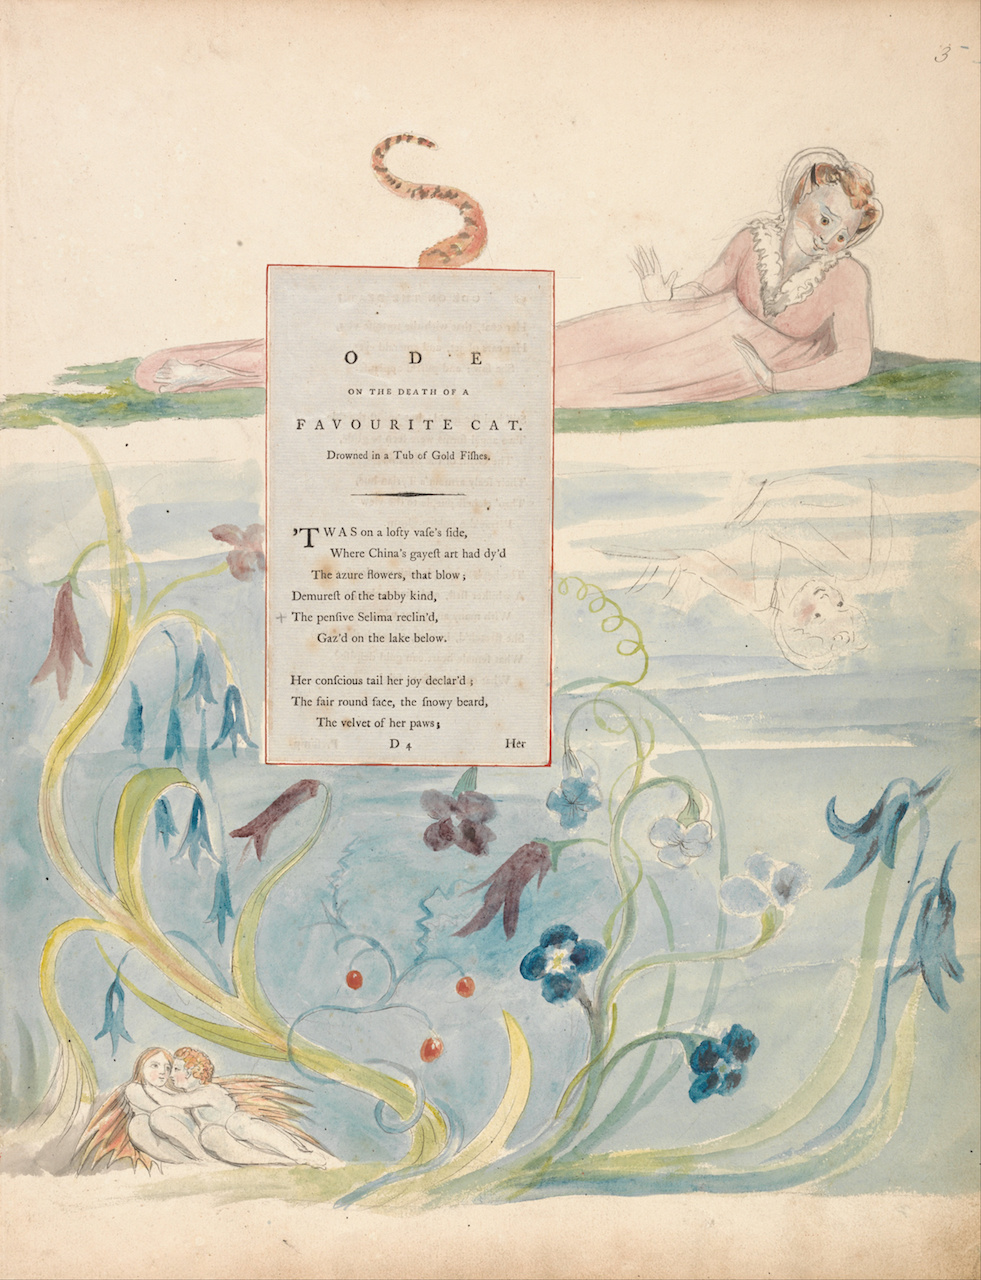 blakes poems essay Free essay: the theme of authority in william blake's poetry the theme of authority is possibly the most important theme and the most popular theme.